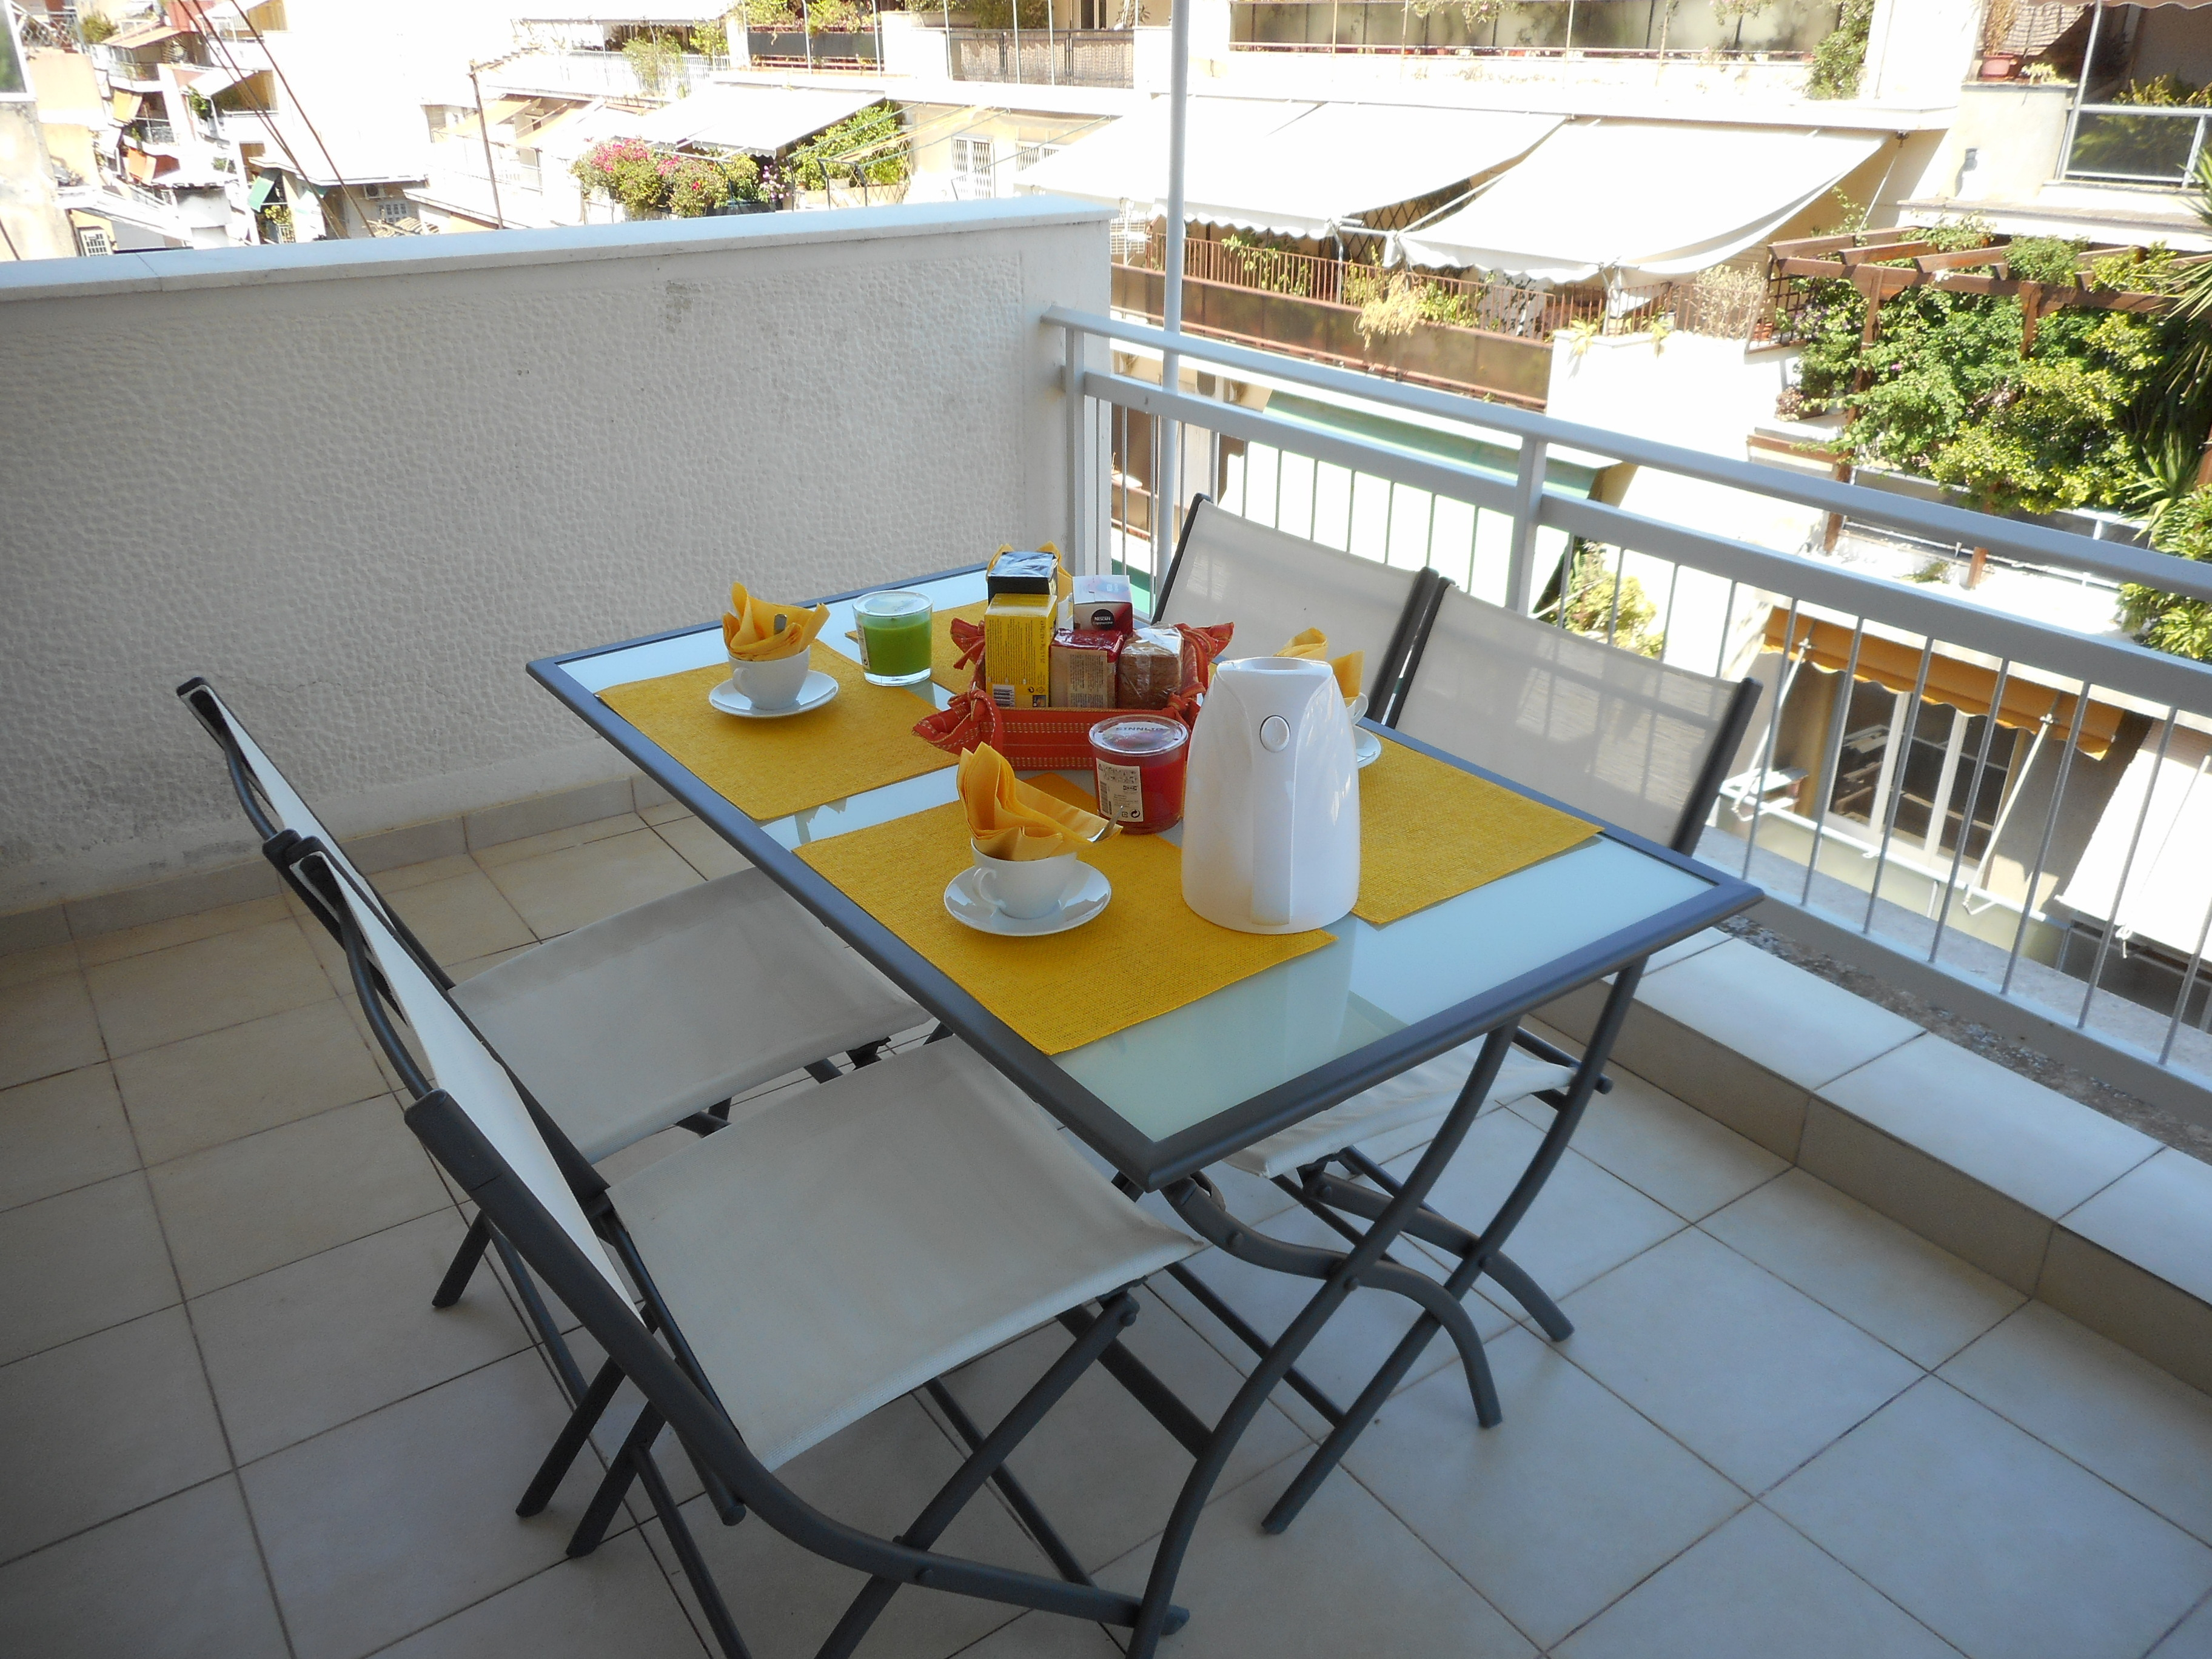 Apartment Ultracareapartments - Athens - City Center - 1 Bedroom Apartment photo 21795776